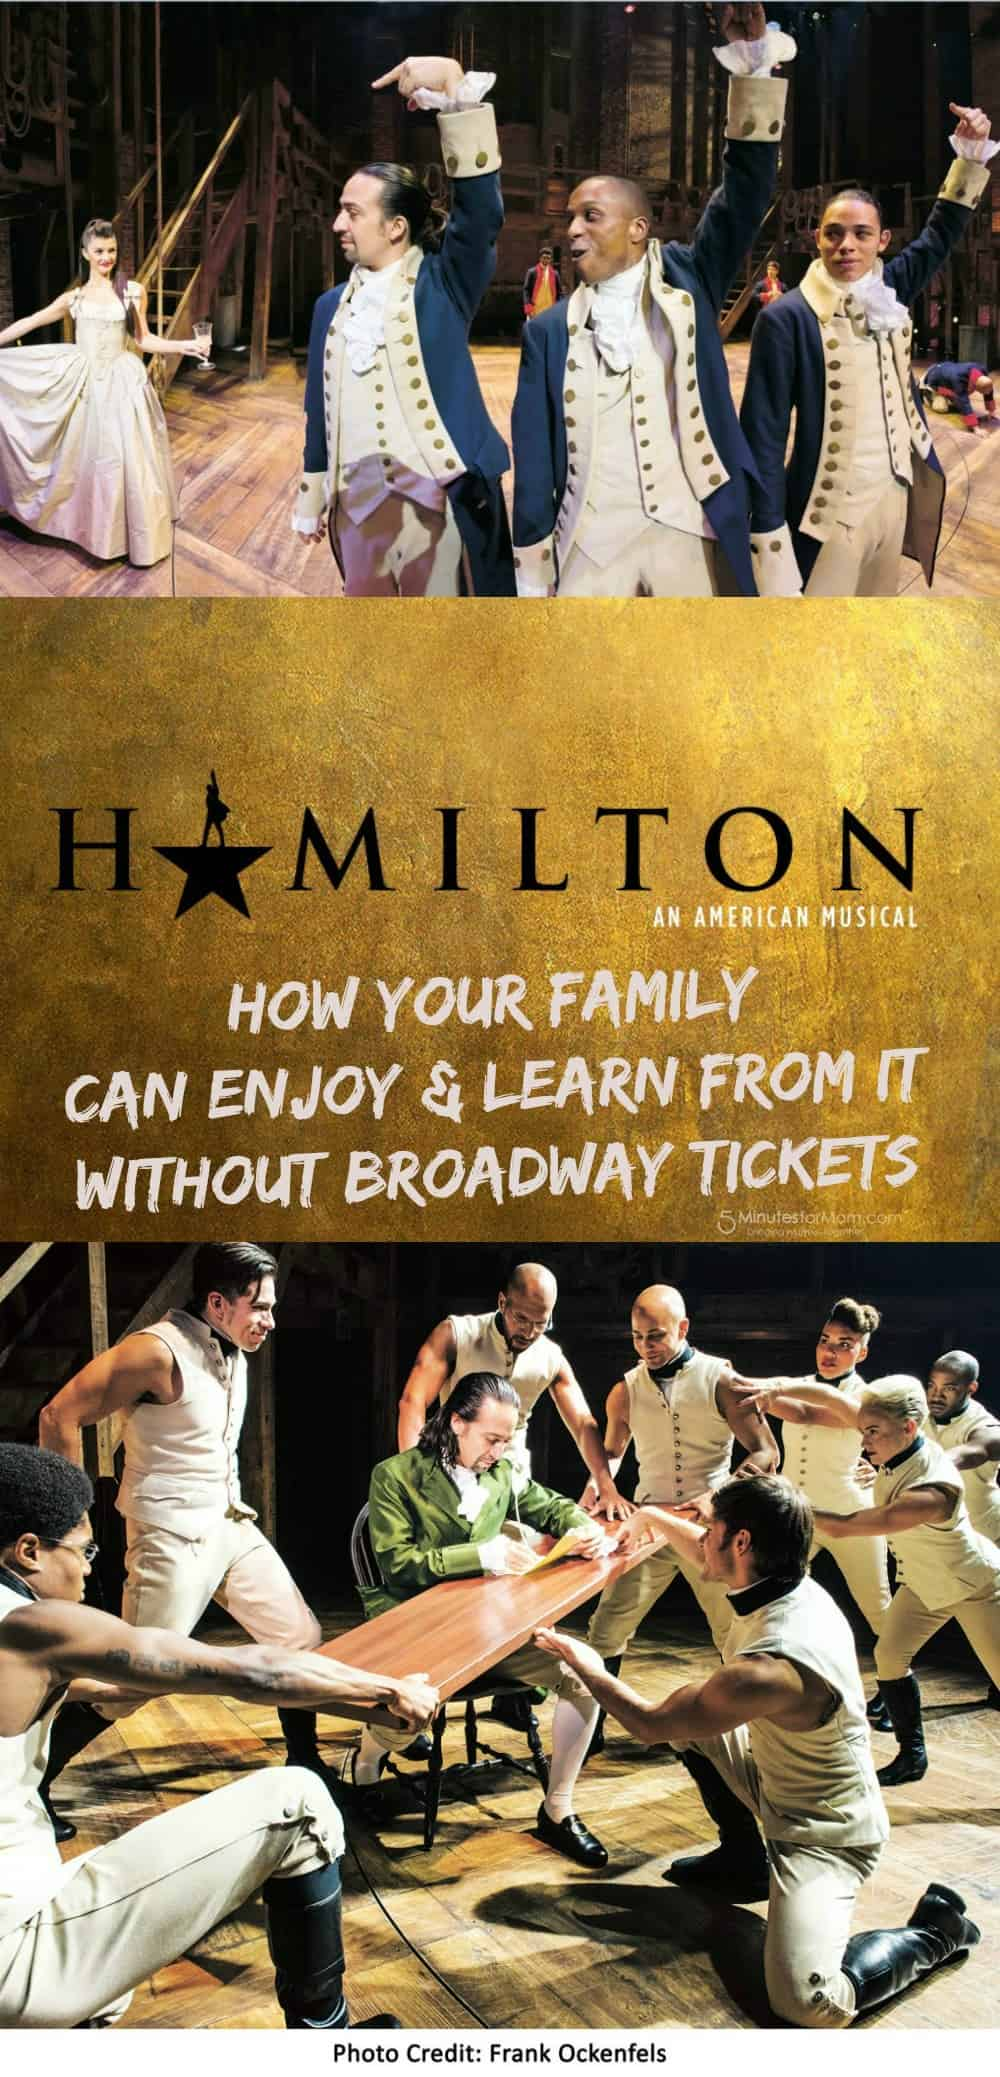 Hamilton - How your family can enjoy and learn from it without Broadway tickets